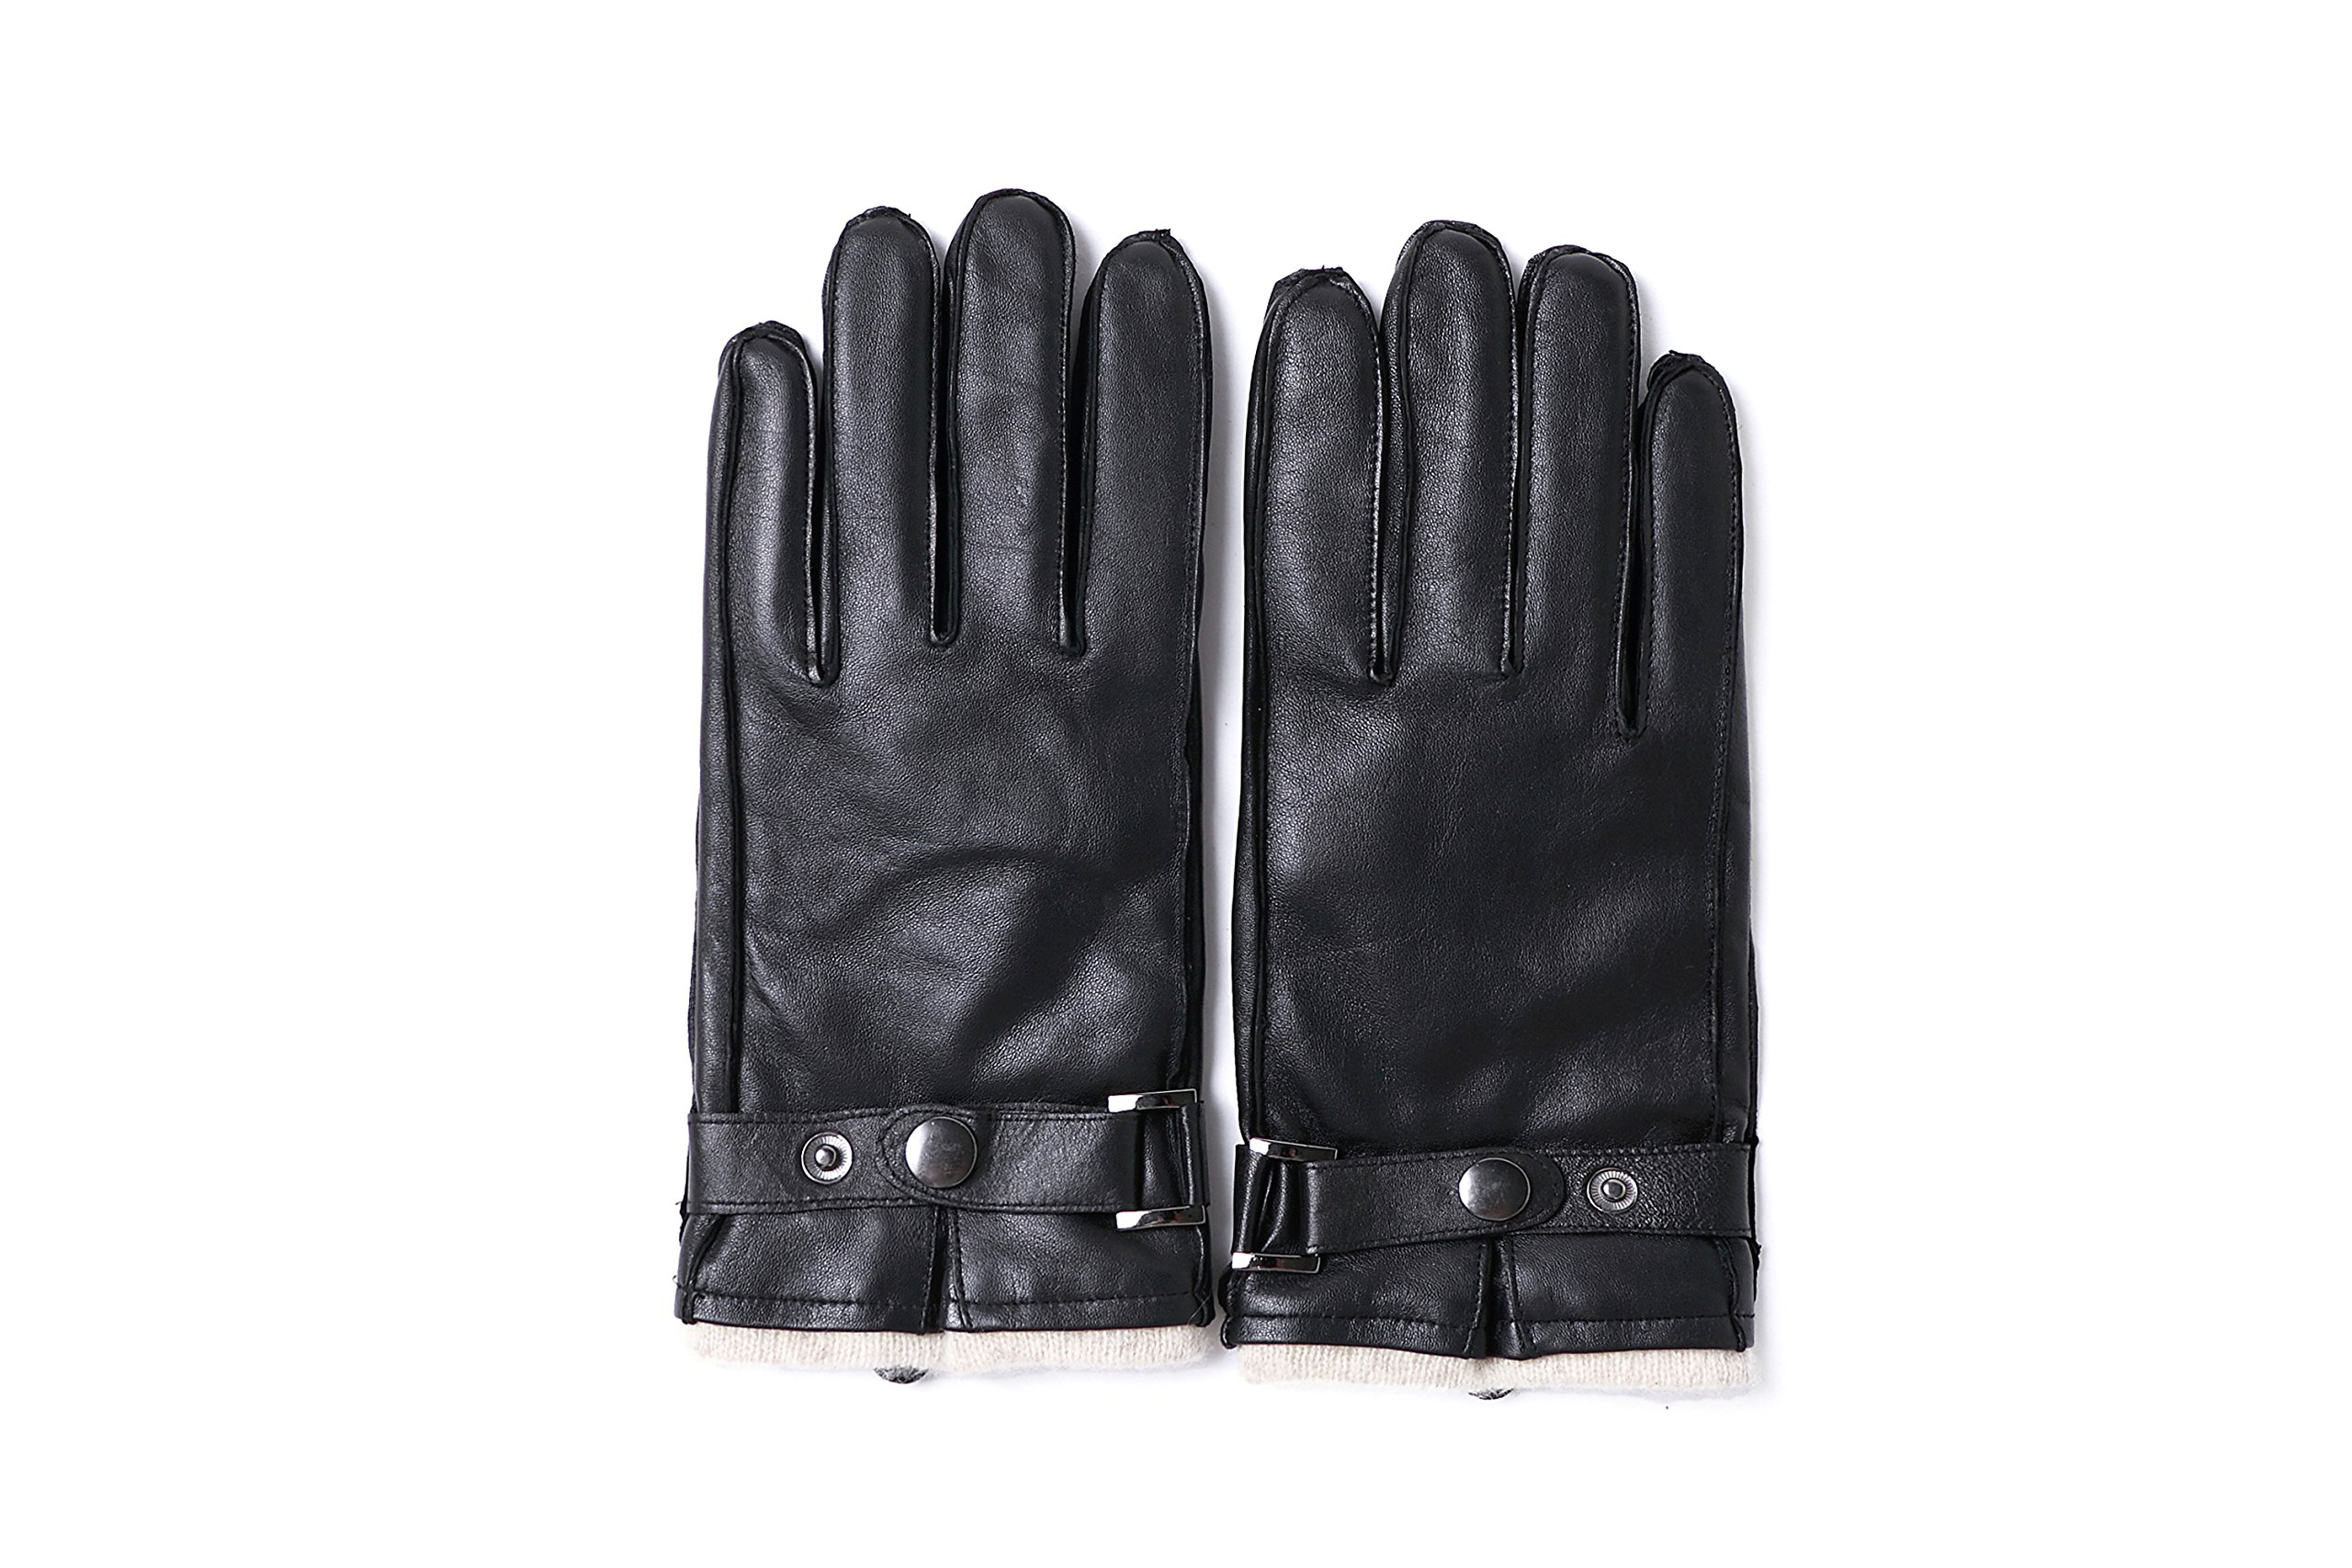 YISEVEN Men's Sheepskin Leather Gloves Flat Design Plain and Belt Wool Lined Real Luxury Soft Hand Warm Fur Heated Lining for Winter Stylish Dress Work Xmas Gift and Motorcycle Driving, Black 100/XL